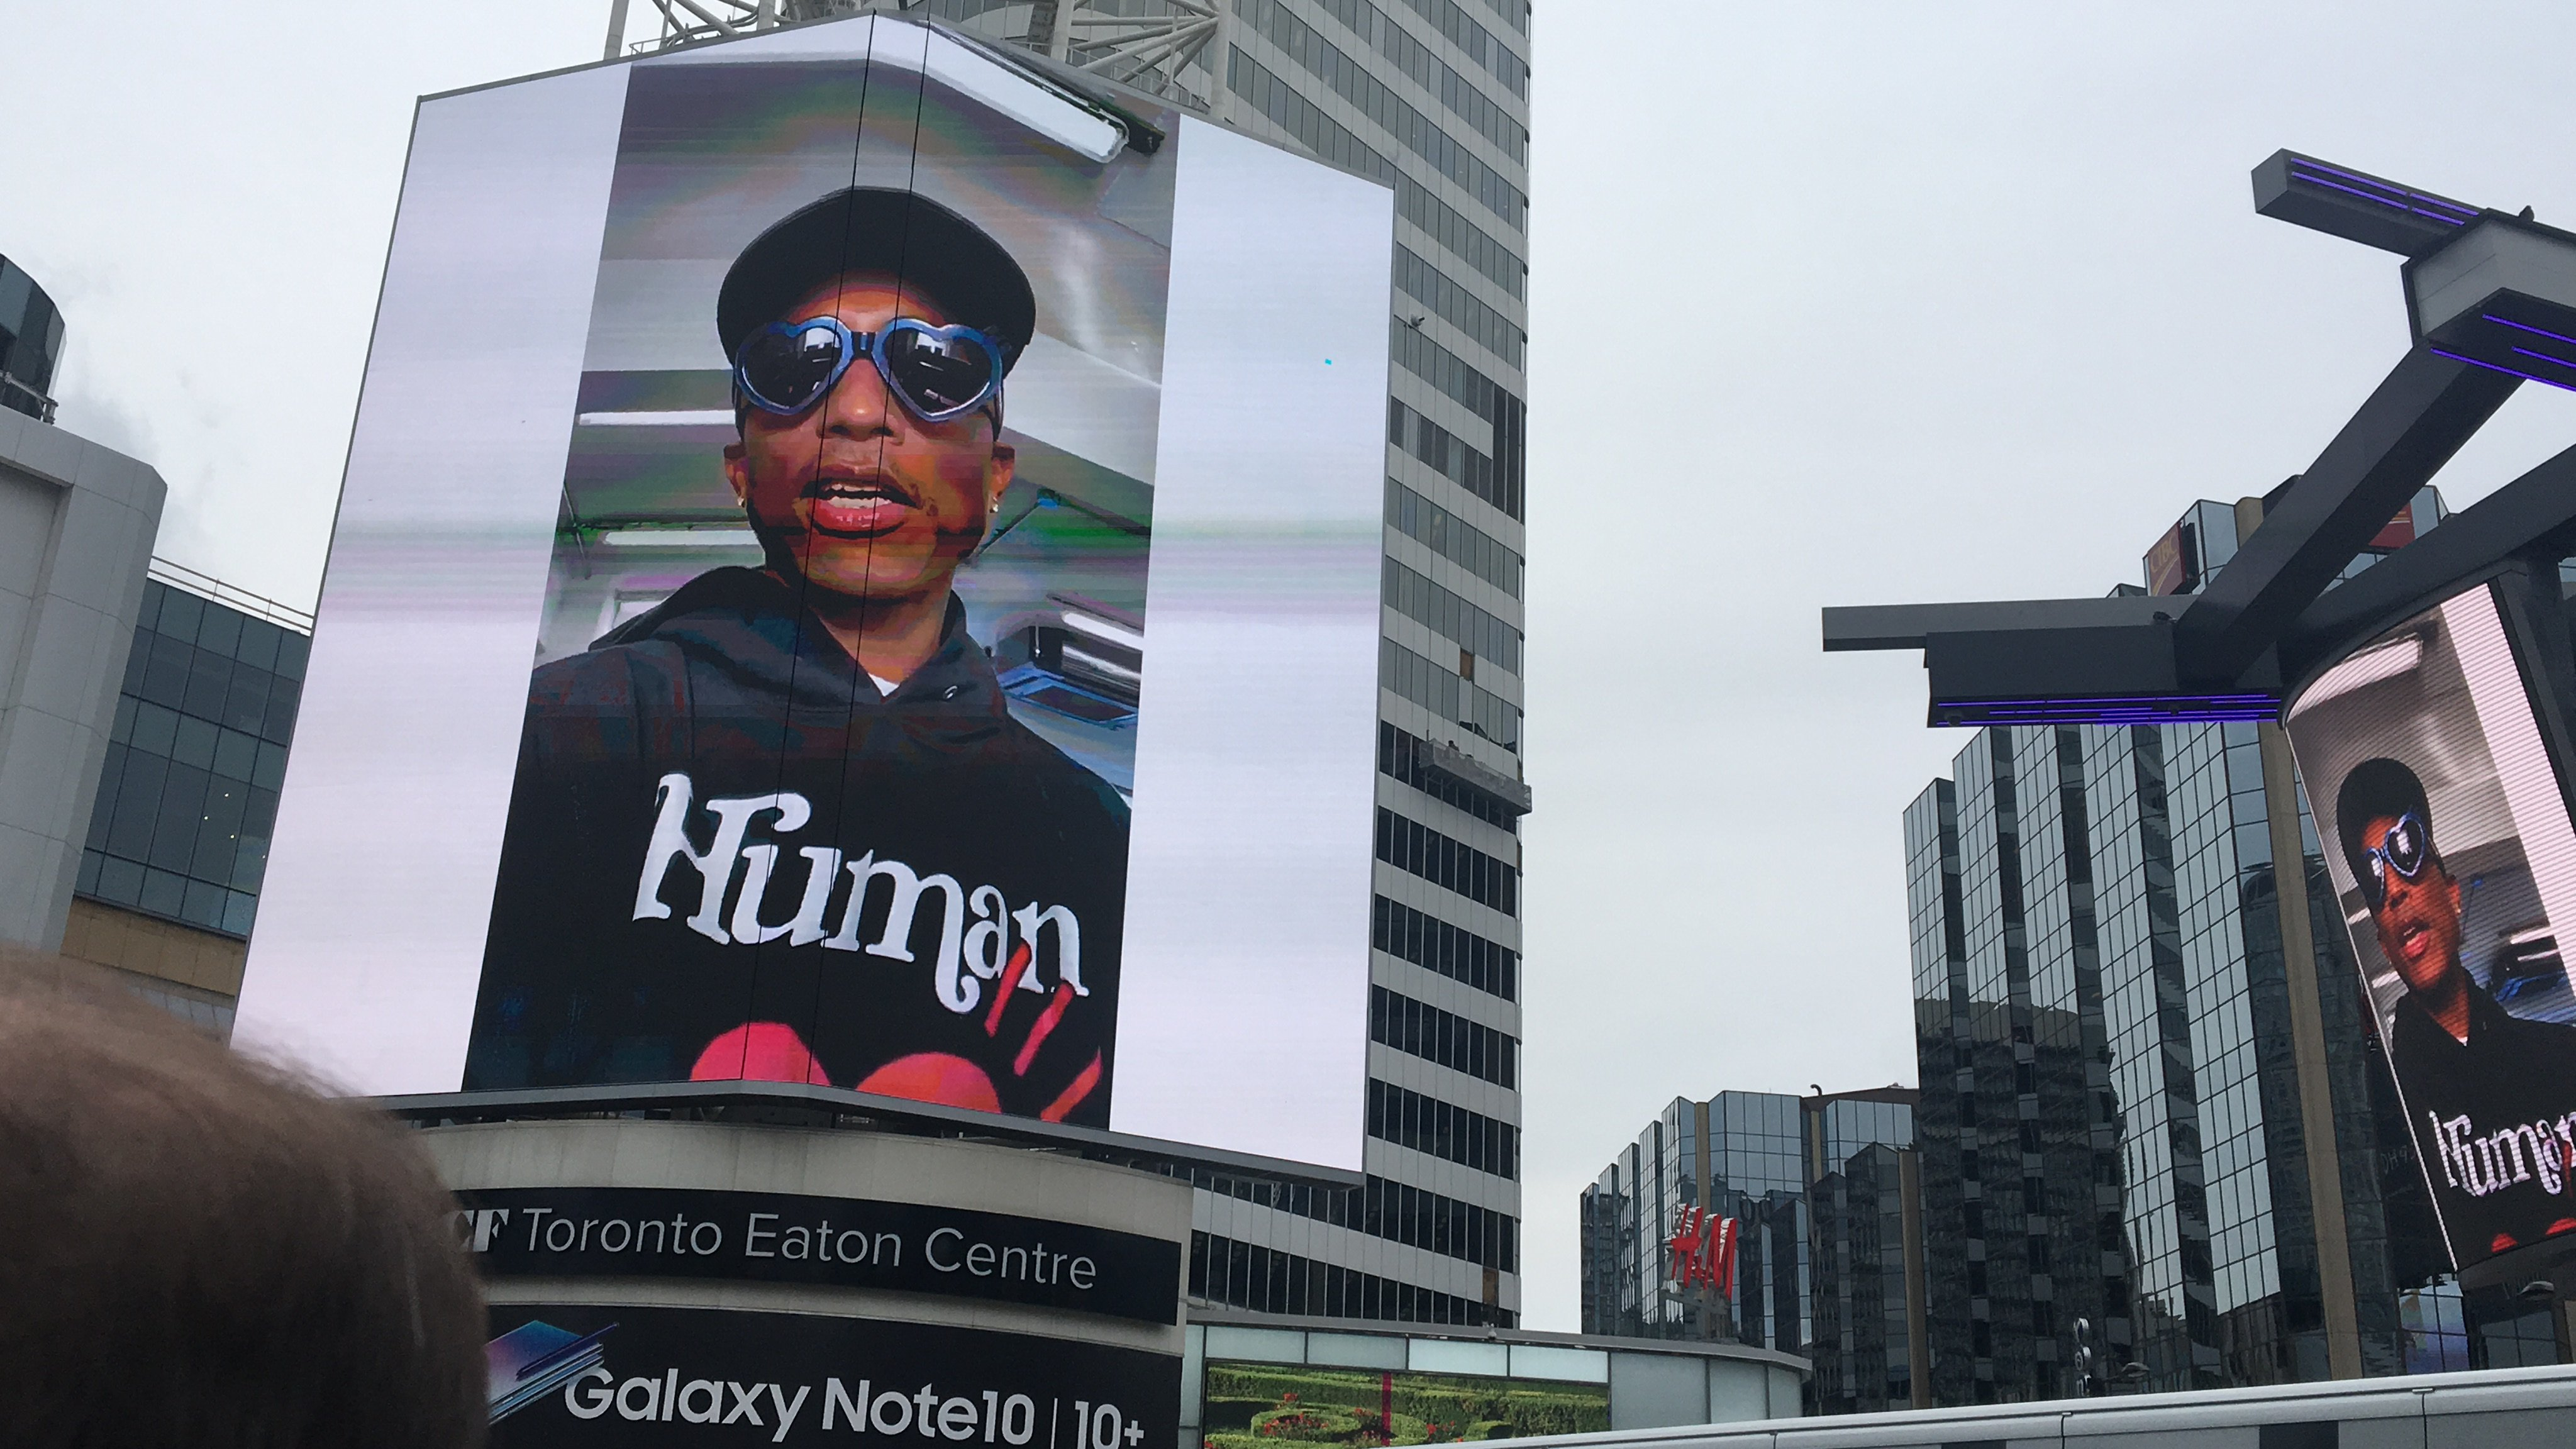 NO-ONE EVER REALLY DEVELOPS: Pharrell's Condo Announcement Ruffles Toronto Feathers.